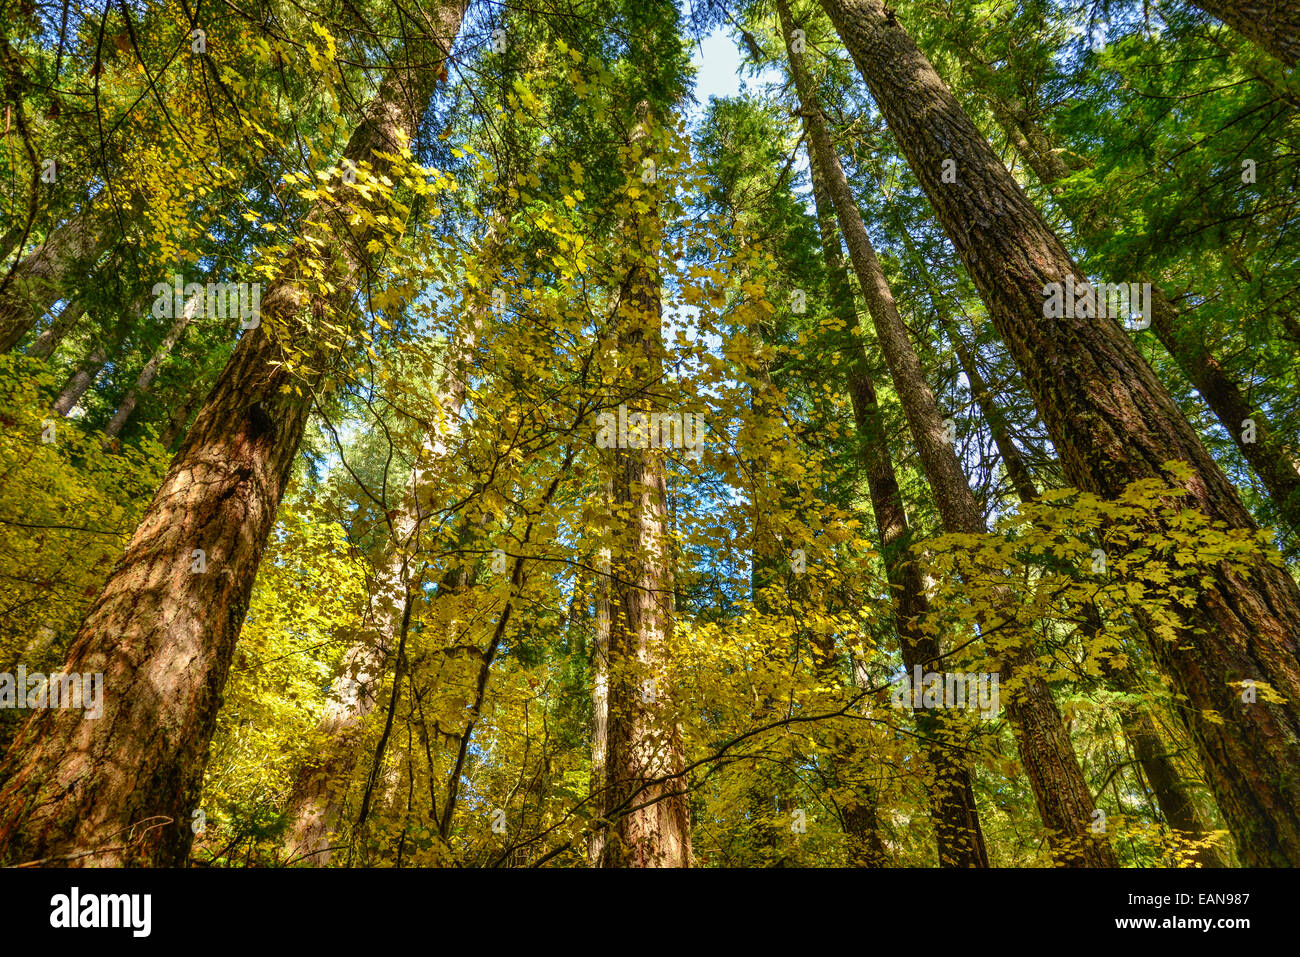 Vine maple and Douglas fir trees in Fall Color on North Fork Trail; North Fork of the Middle Fork Willamette River, - Stock Image